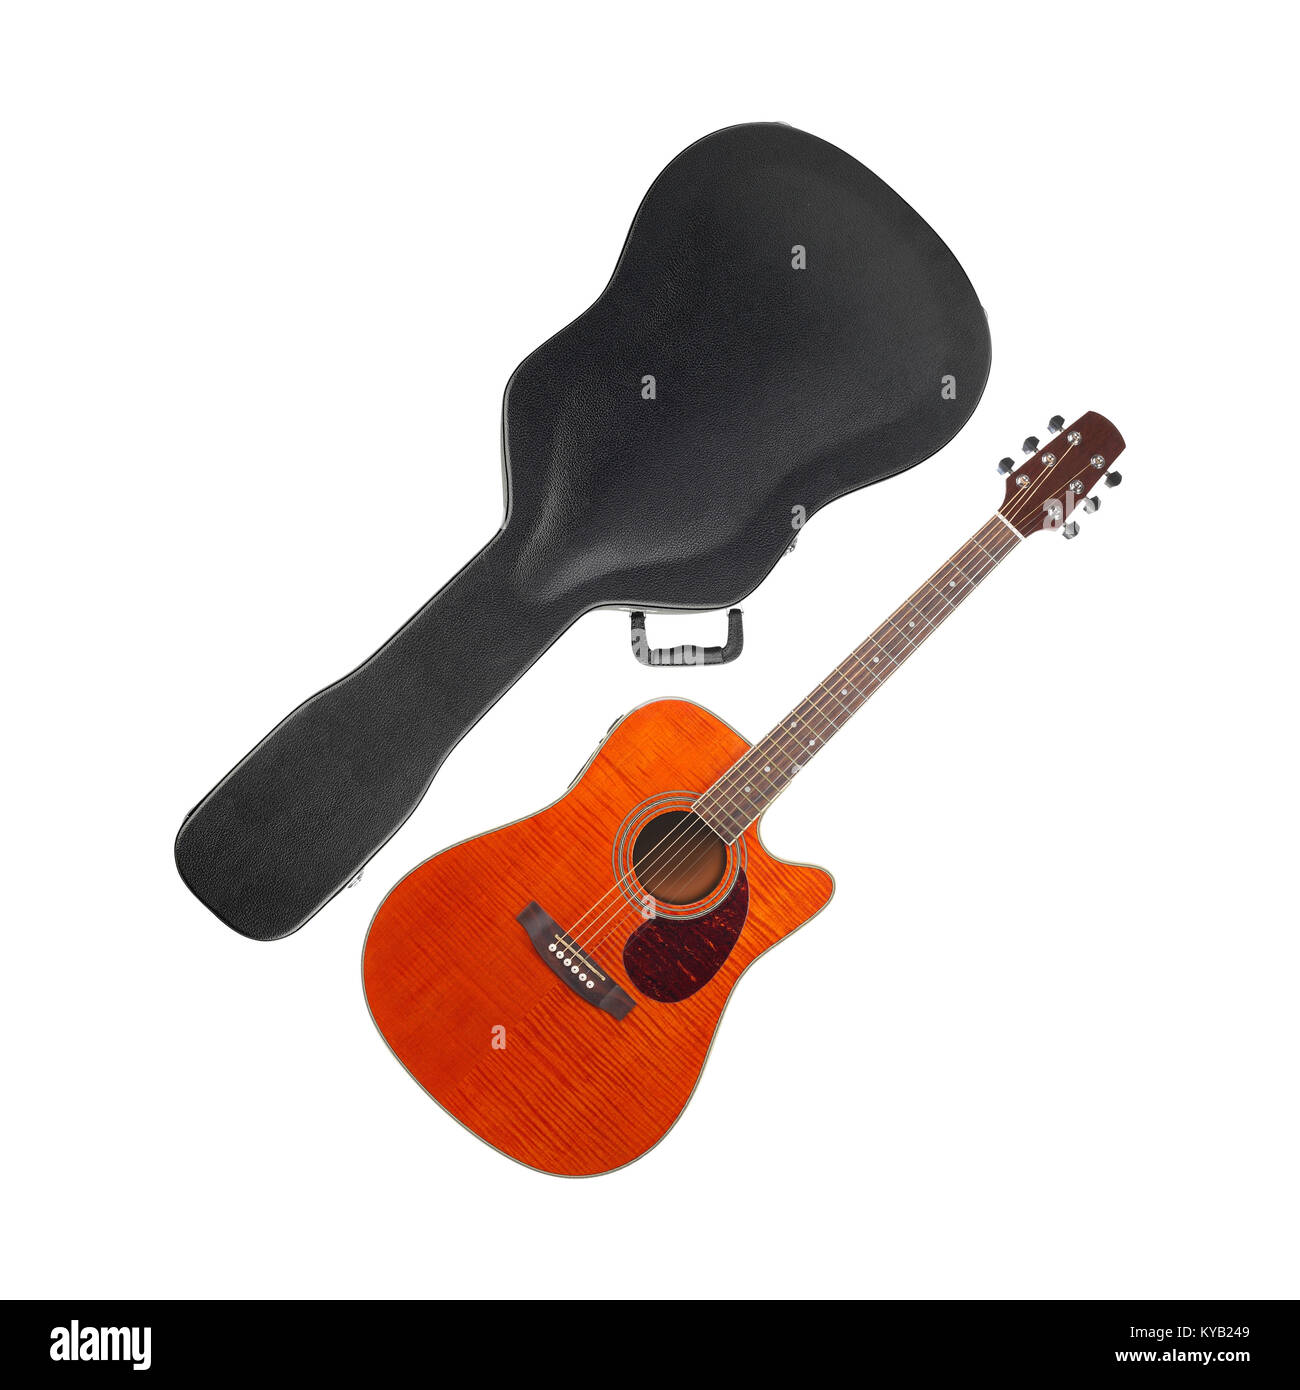 Musical instrument - Orange Flame maple cutaway guitar hard case on a white background. Stock Photo